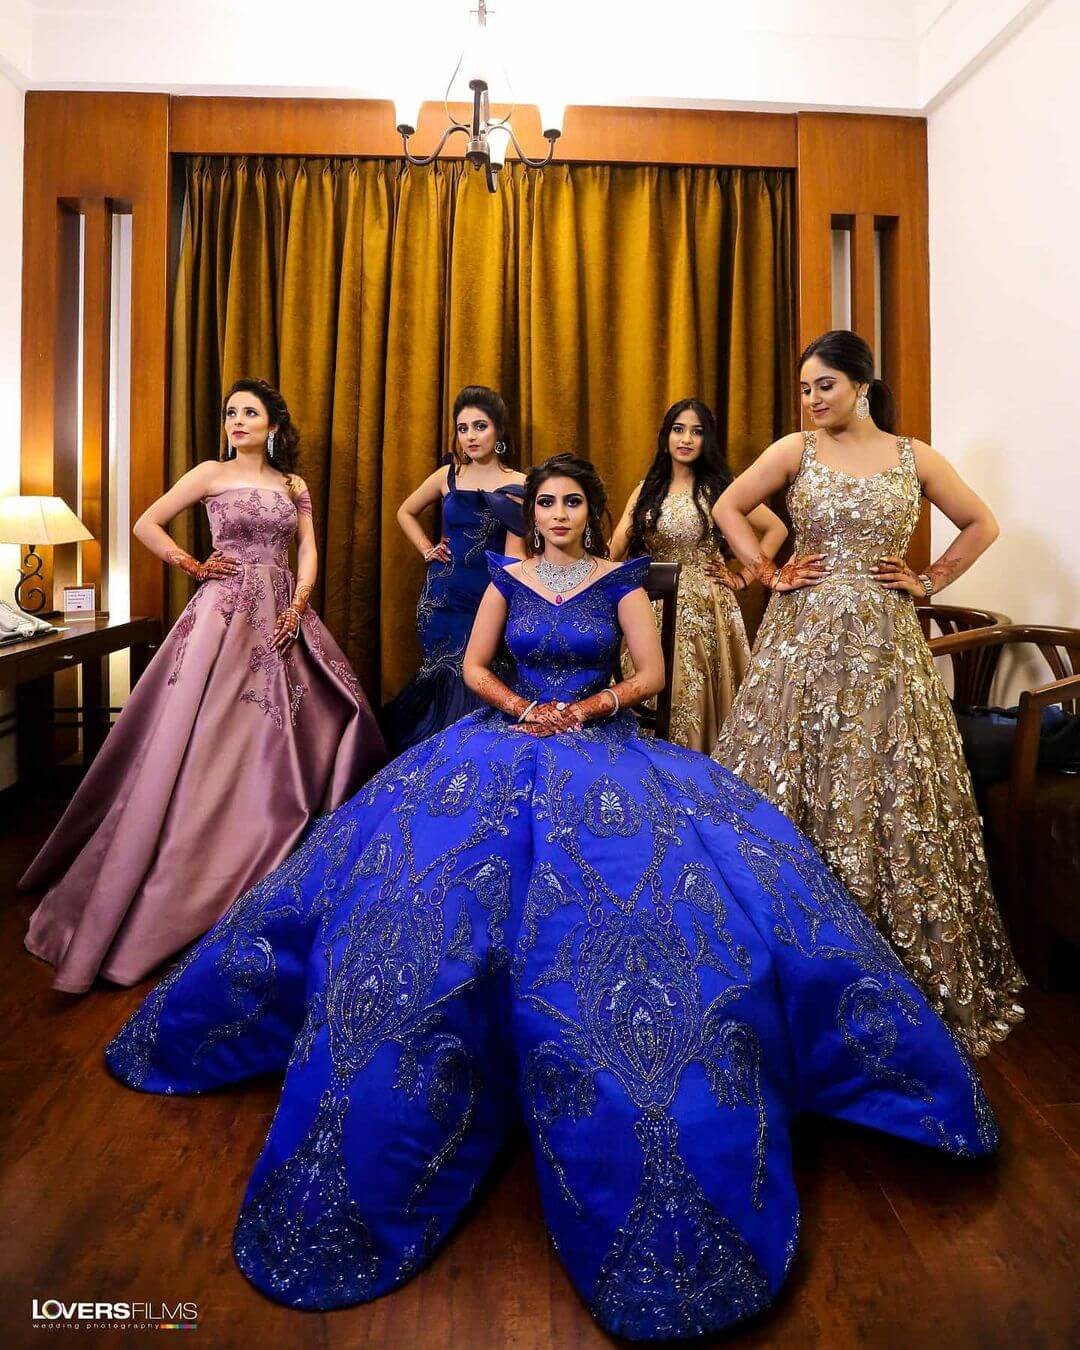 Ravishing Series of Ball Gowns for wedding functions